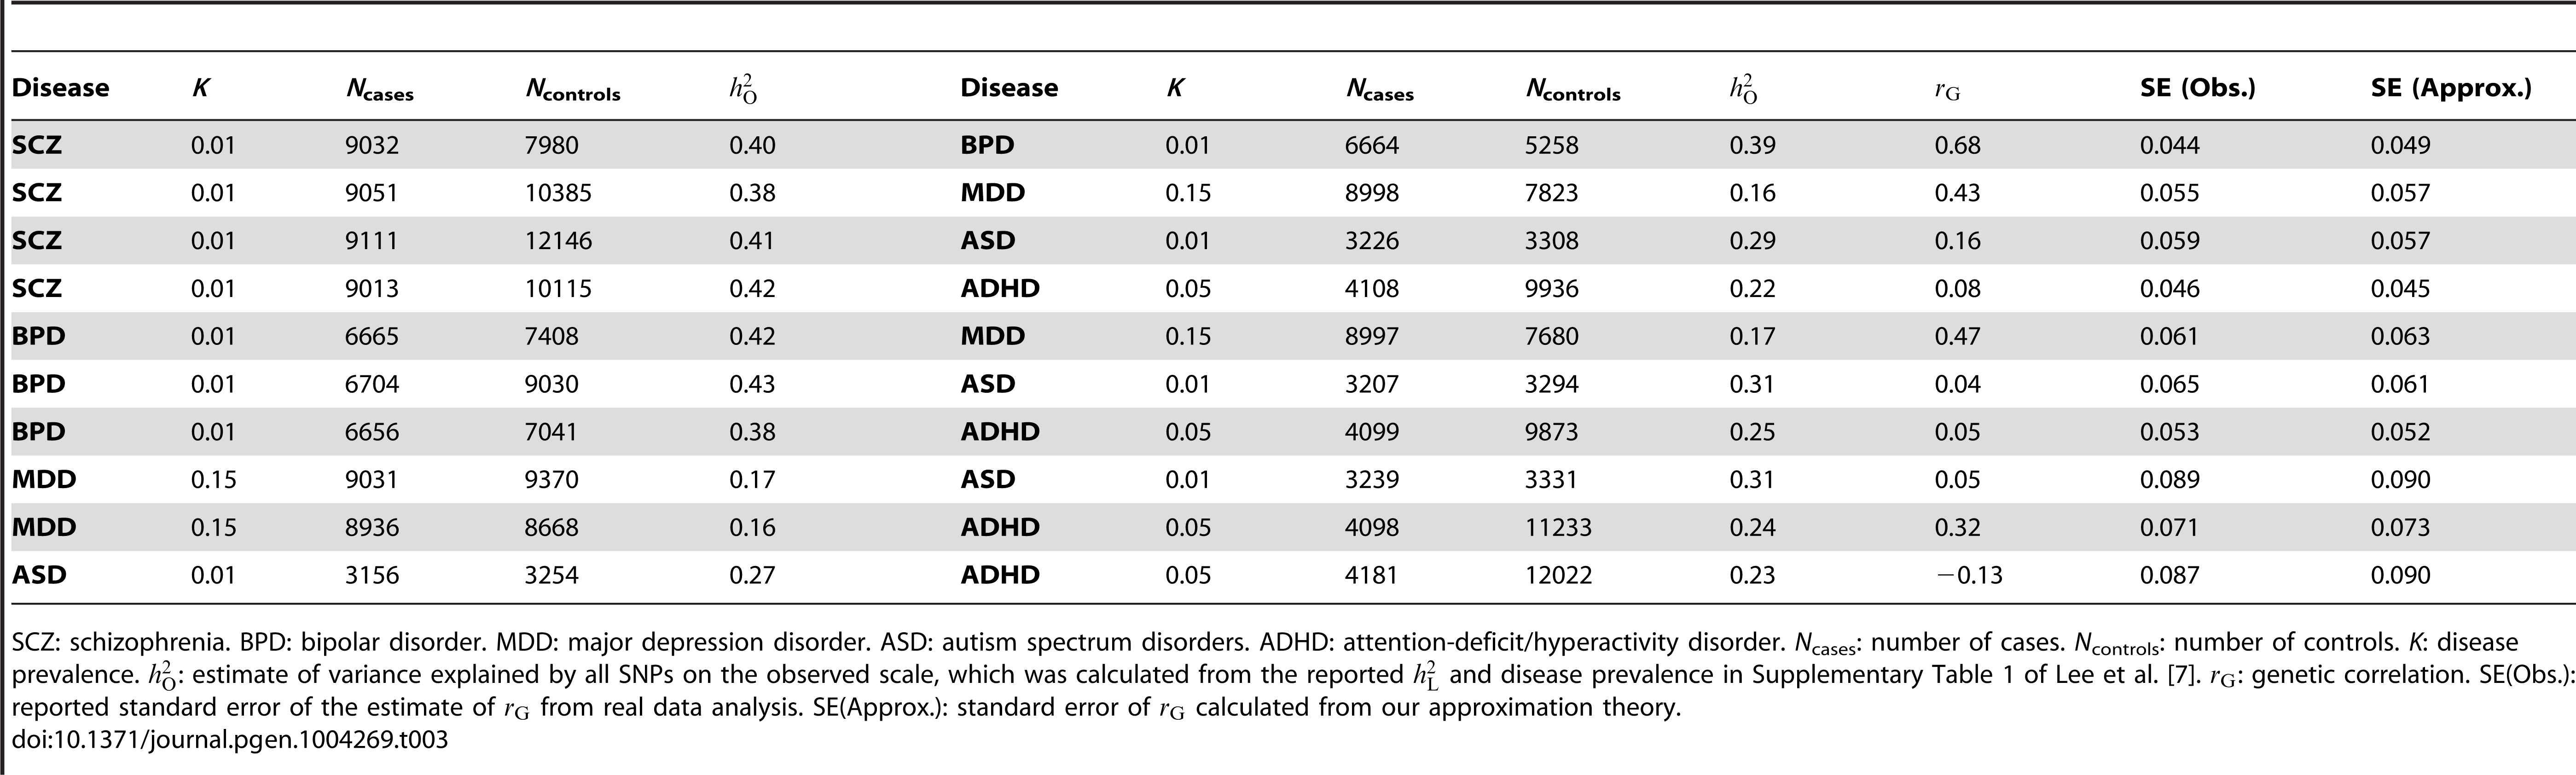 Standard errors of the estimates of genetic correlations from published bivariate analyses of case-control studies for psychiatric diseases <em class=&quot;ref&quot;>[7]</em> vs. those predicted from the approximation theory.